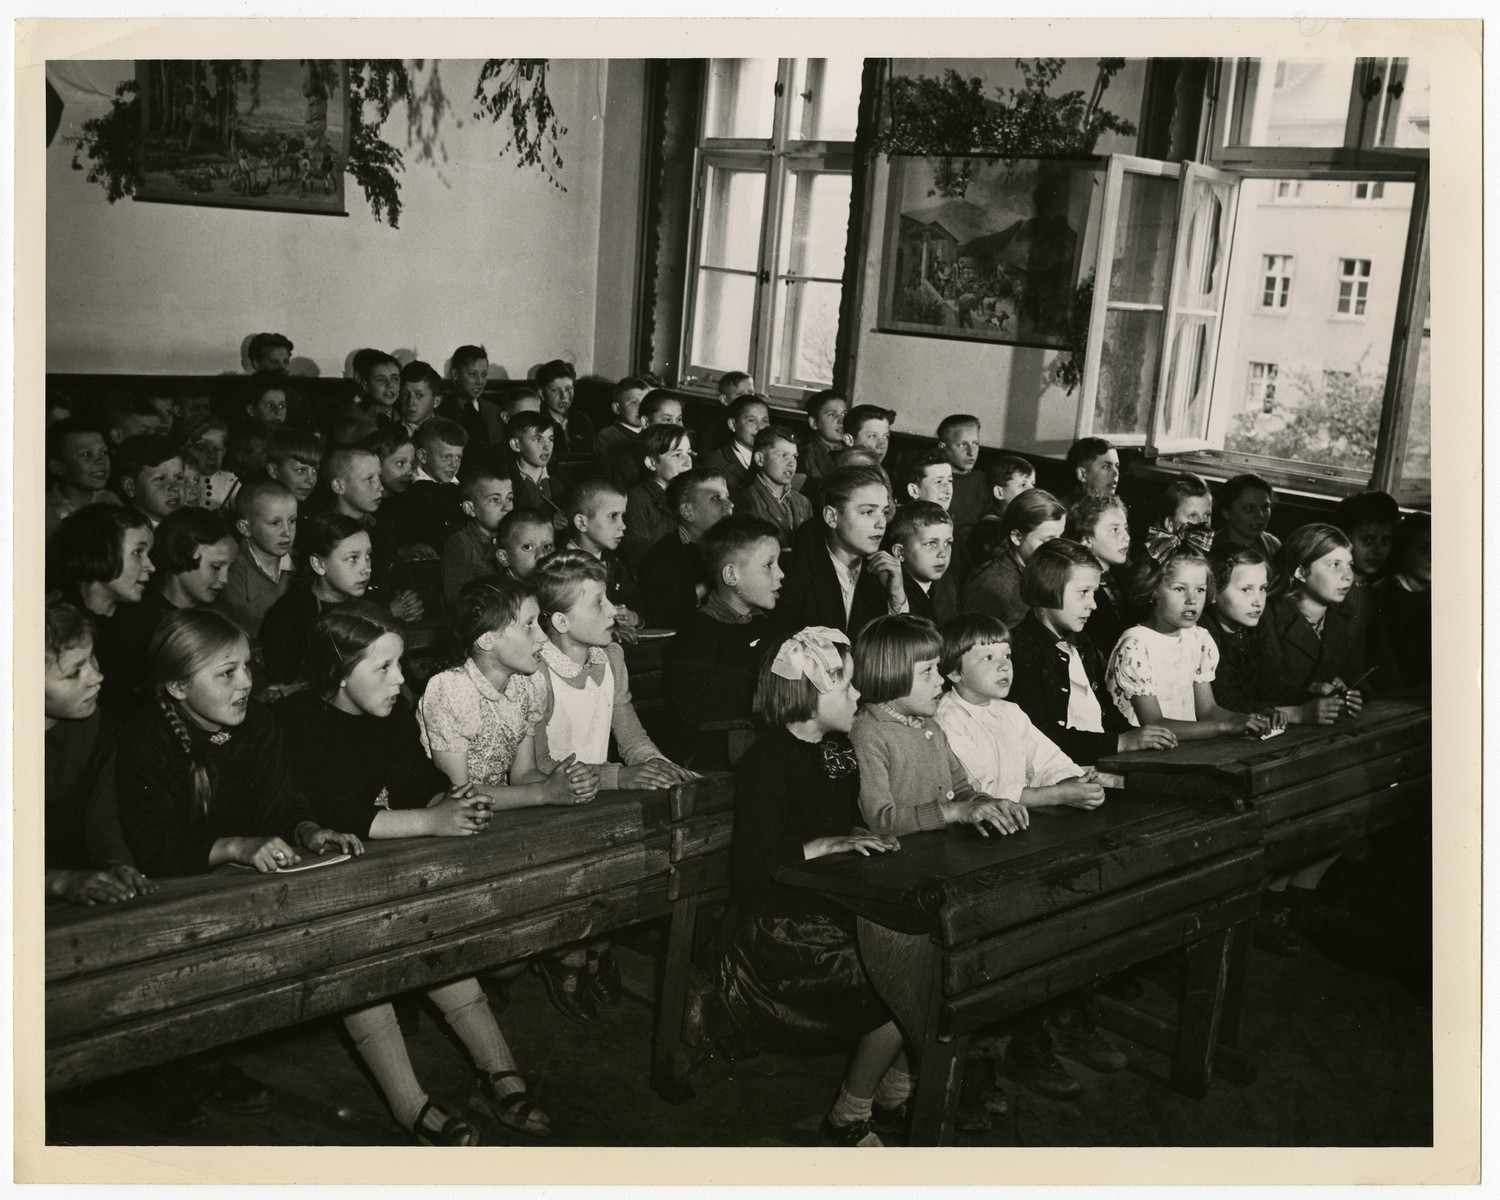 Polish children attend school in a displaced persons camp  Original caption reads:  Allies Speed Repatriation of Displaced Persons Inside Germany Liberated by the Allied armies in Germany, more than four million men, women and children, former slaves of the Nazi war machine, are free to return to their native lands as soon as repatriation machinery makes it possible. Meanwhile, these displaced persons are being gathered from the fields, factories and roadsides of Germany by Military Government authorities and placed in camps where they are registered, fed, clothed, sheltered and given medical attention.   Persons of almost a dozen nationalities, living in separate camps wherever possible, are guided along democratic lines in the operation of their communities. U.S. Army officials set up the displaced persons centers, guard the exterior of the camps and turn over the guidance problems to international teams representing the United Nations Relief and Rehabilitation Administrations. Once all the displaced persons are repatriated, UNRRA's job in Germany is finished, as it has nothing to do with Germans or military activities.   The Governments of Belgium, Holland, France and Luxembourg, have already brought thousands of their nationals home. By May 17, 1945, nearly 500,000 liberated prisoners-of-war and poltiical deportees were evacuated from German camps. The group included 604,950 Frnech, 120,140 British and 62,981 Americnas. All the Americans, 100,000 Frenchmen and 119,000 Britons were evacuated by air.   THIS PICTURE SHOWS: This is a Polish classroom established at the captured Wehrmacht post of Gniesnau Kasserno, near the east shore of the Rhine River across from Coblonz. The school was established by Lieutenent Colenol E.T. Hayes of Paducah, Kentucky, in an effort to get the childredn started towards an education. Many had spent their time playing war games, their favorite pastime being hand- grenade hunting. After finding the explosive they would toss them to eac